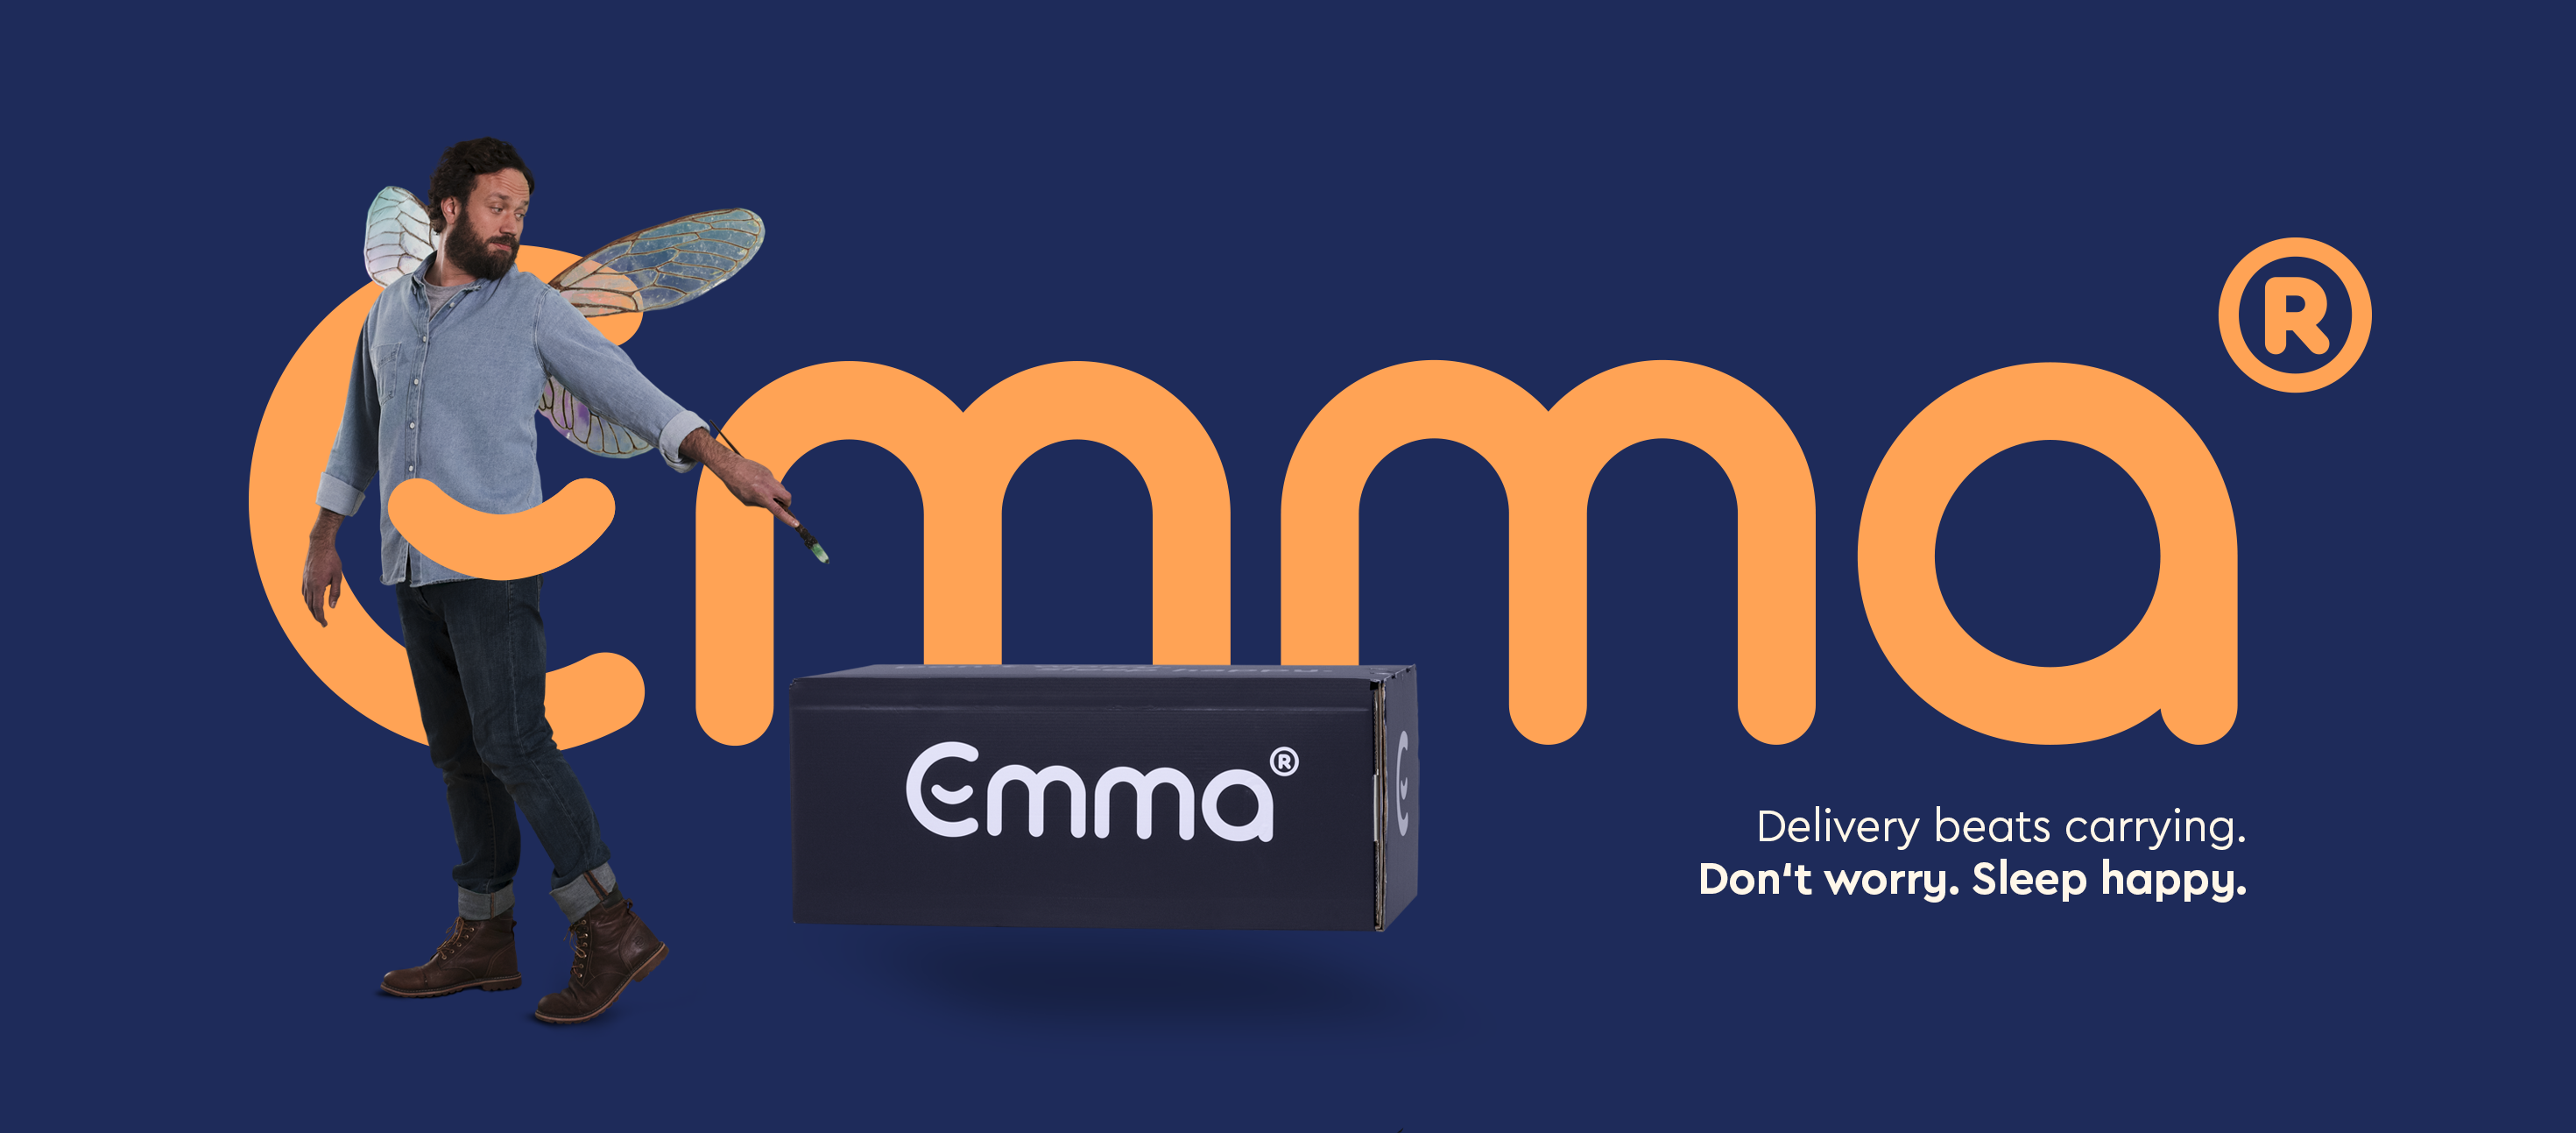 emma_delivery